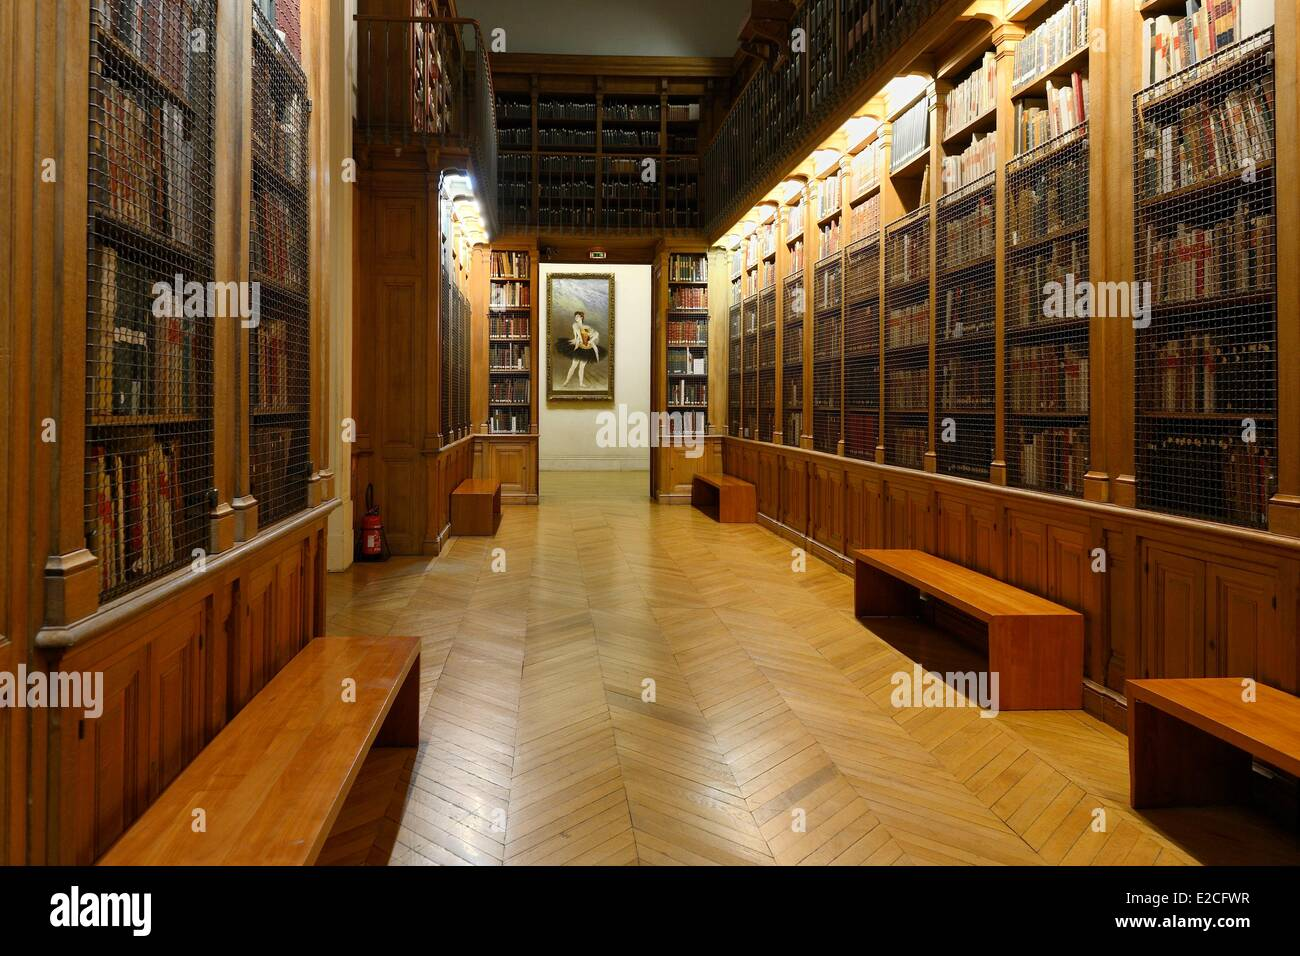 france paris bibliotheque musee de l 39 opera national de paris is a stock photo royalty free. Black Bedroom Furniture Sets. Home Design Ideas